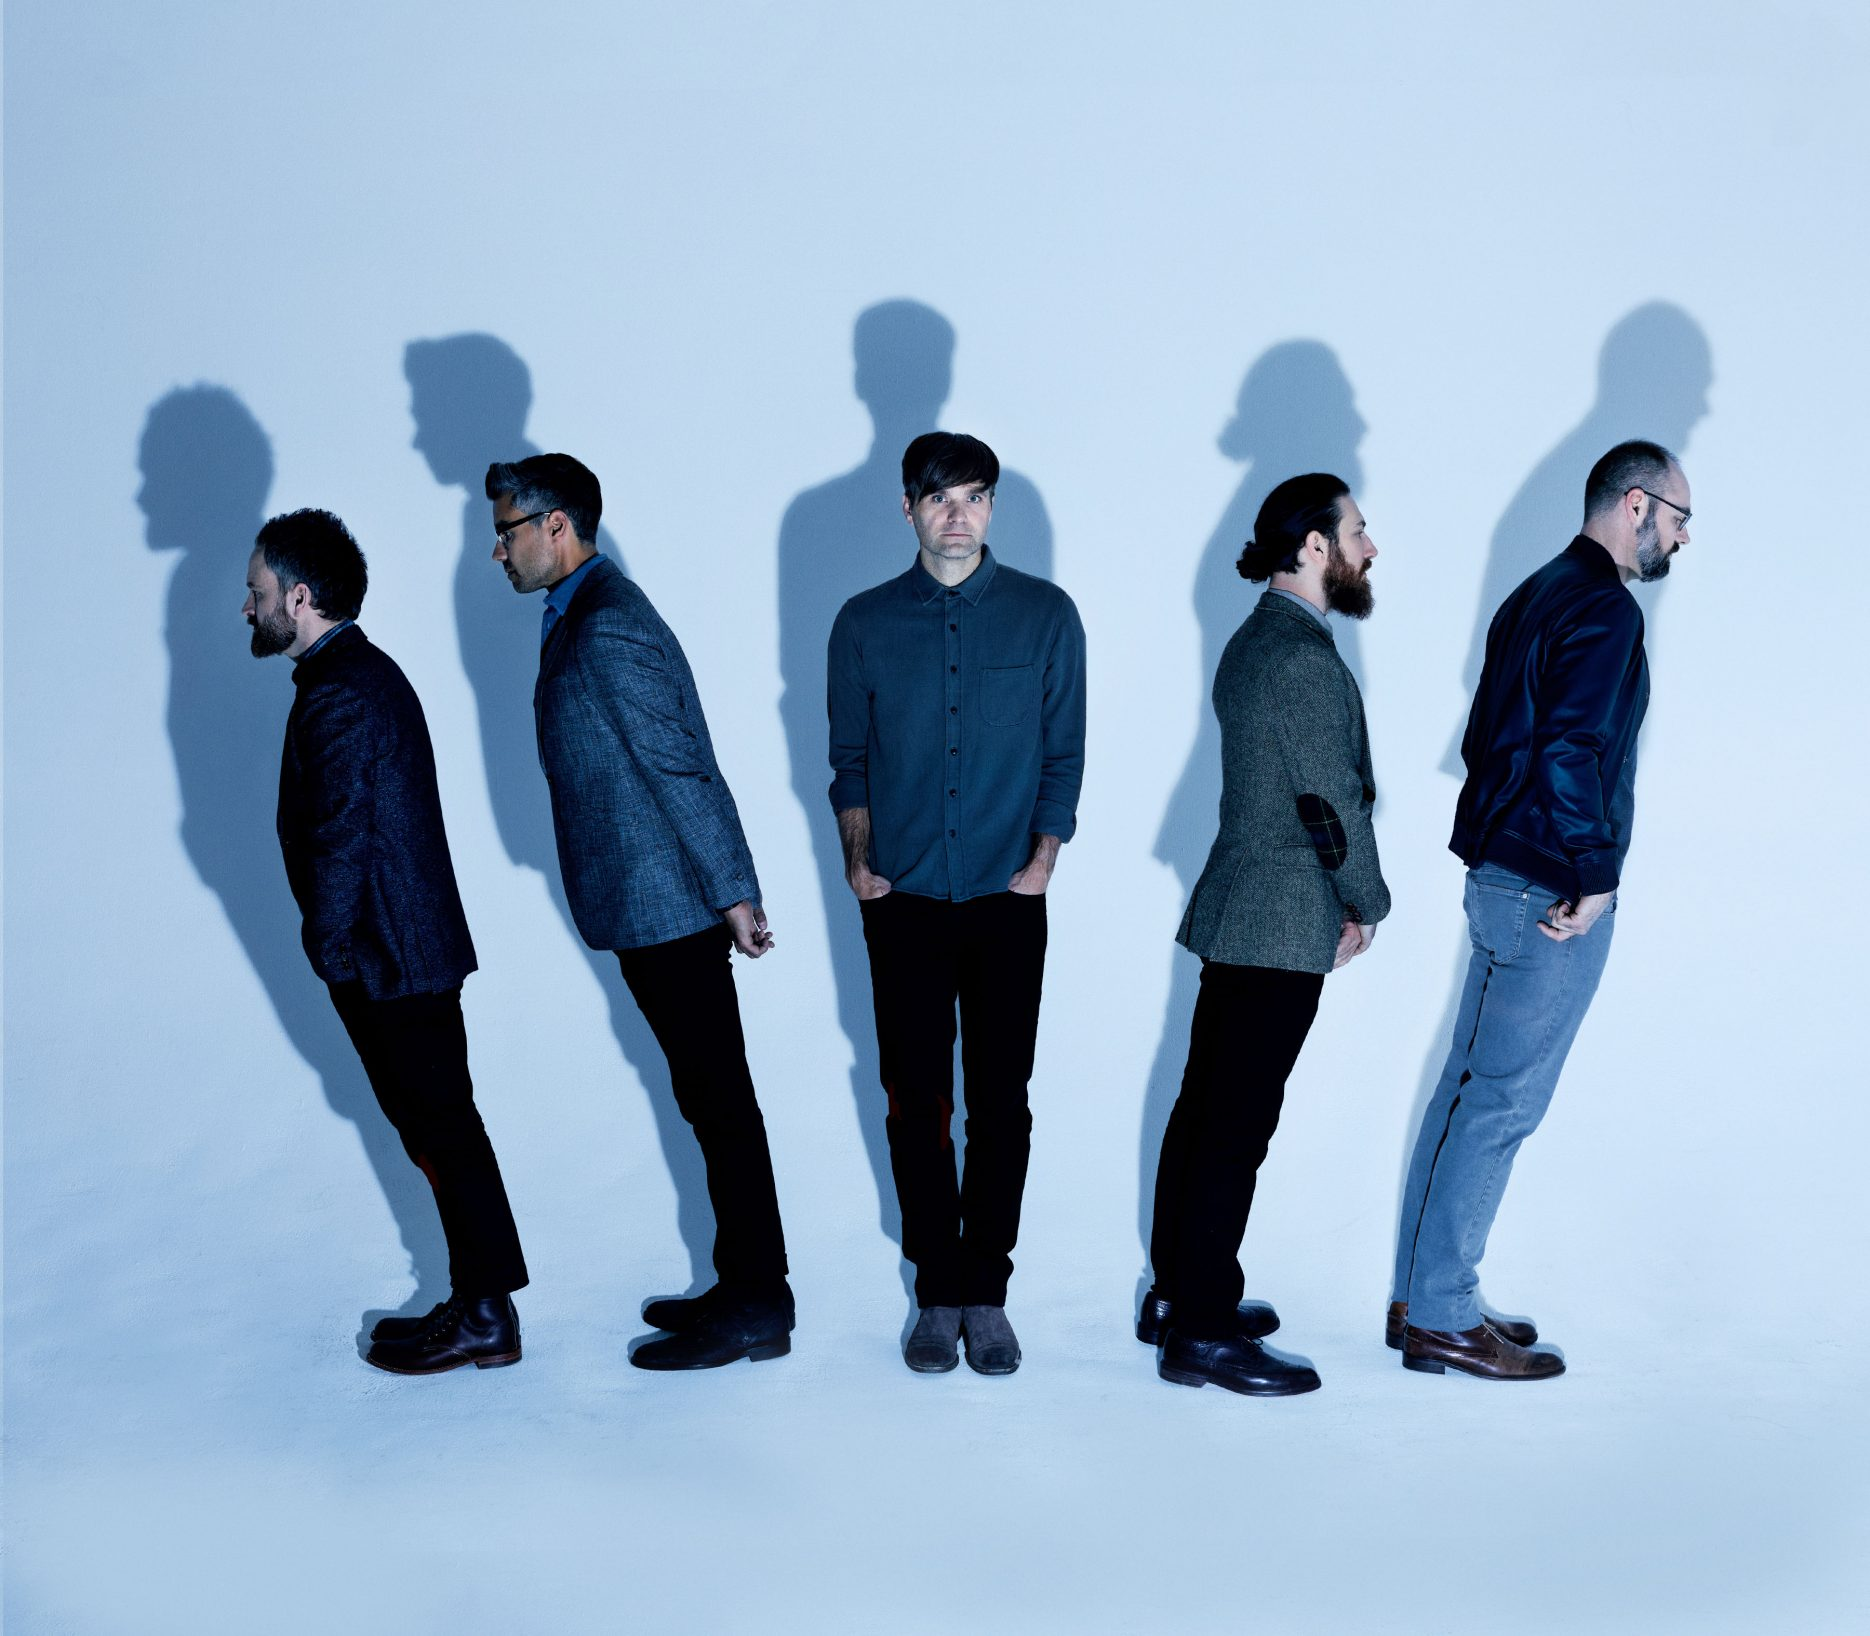 Death Cab for Cutie, by Eliot Lee Hazel